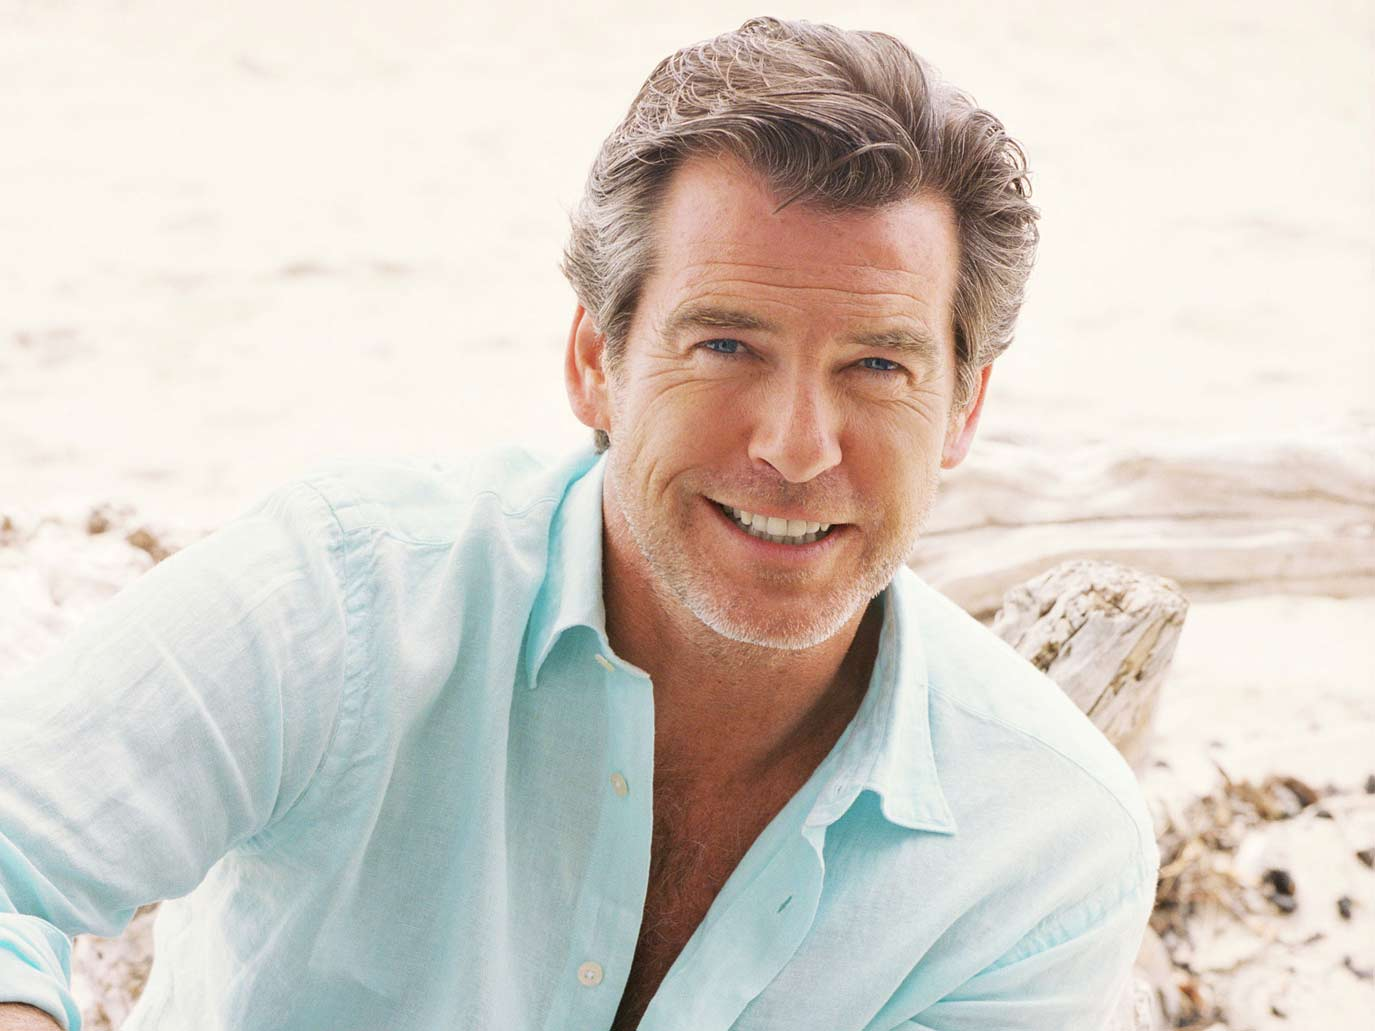 pierce-brosnan-sexy-hollywood-hot-sexiest-actor-men-movie-star-recent-james-bond